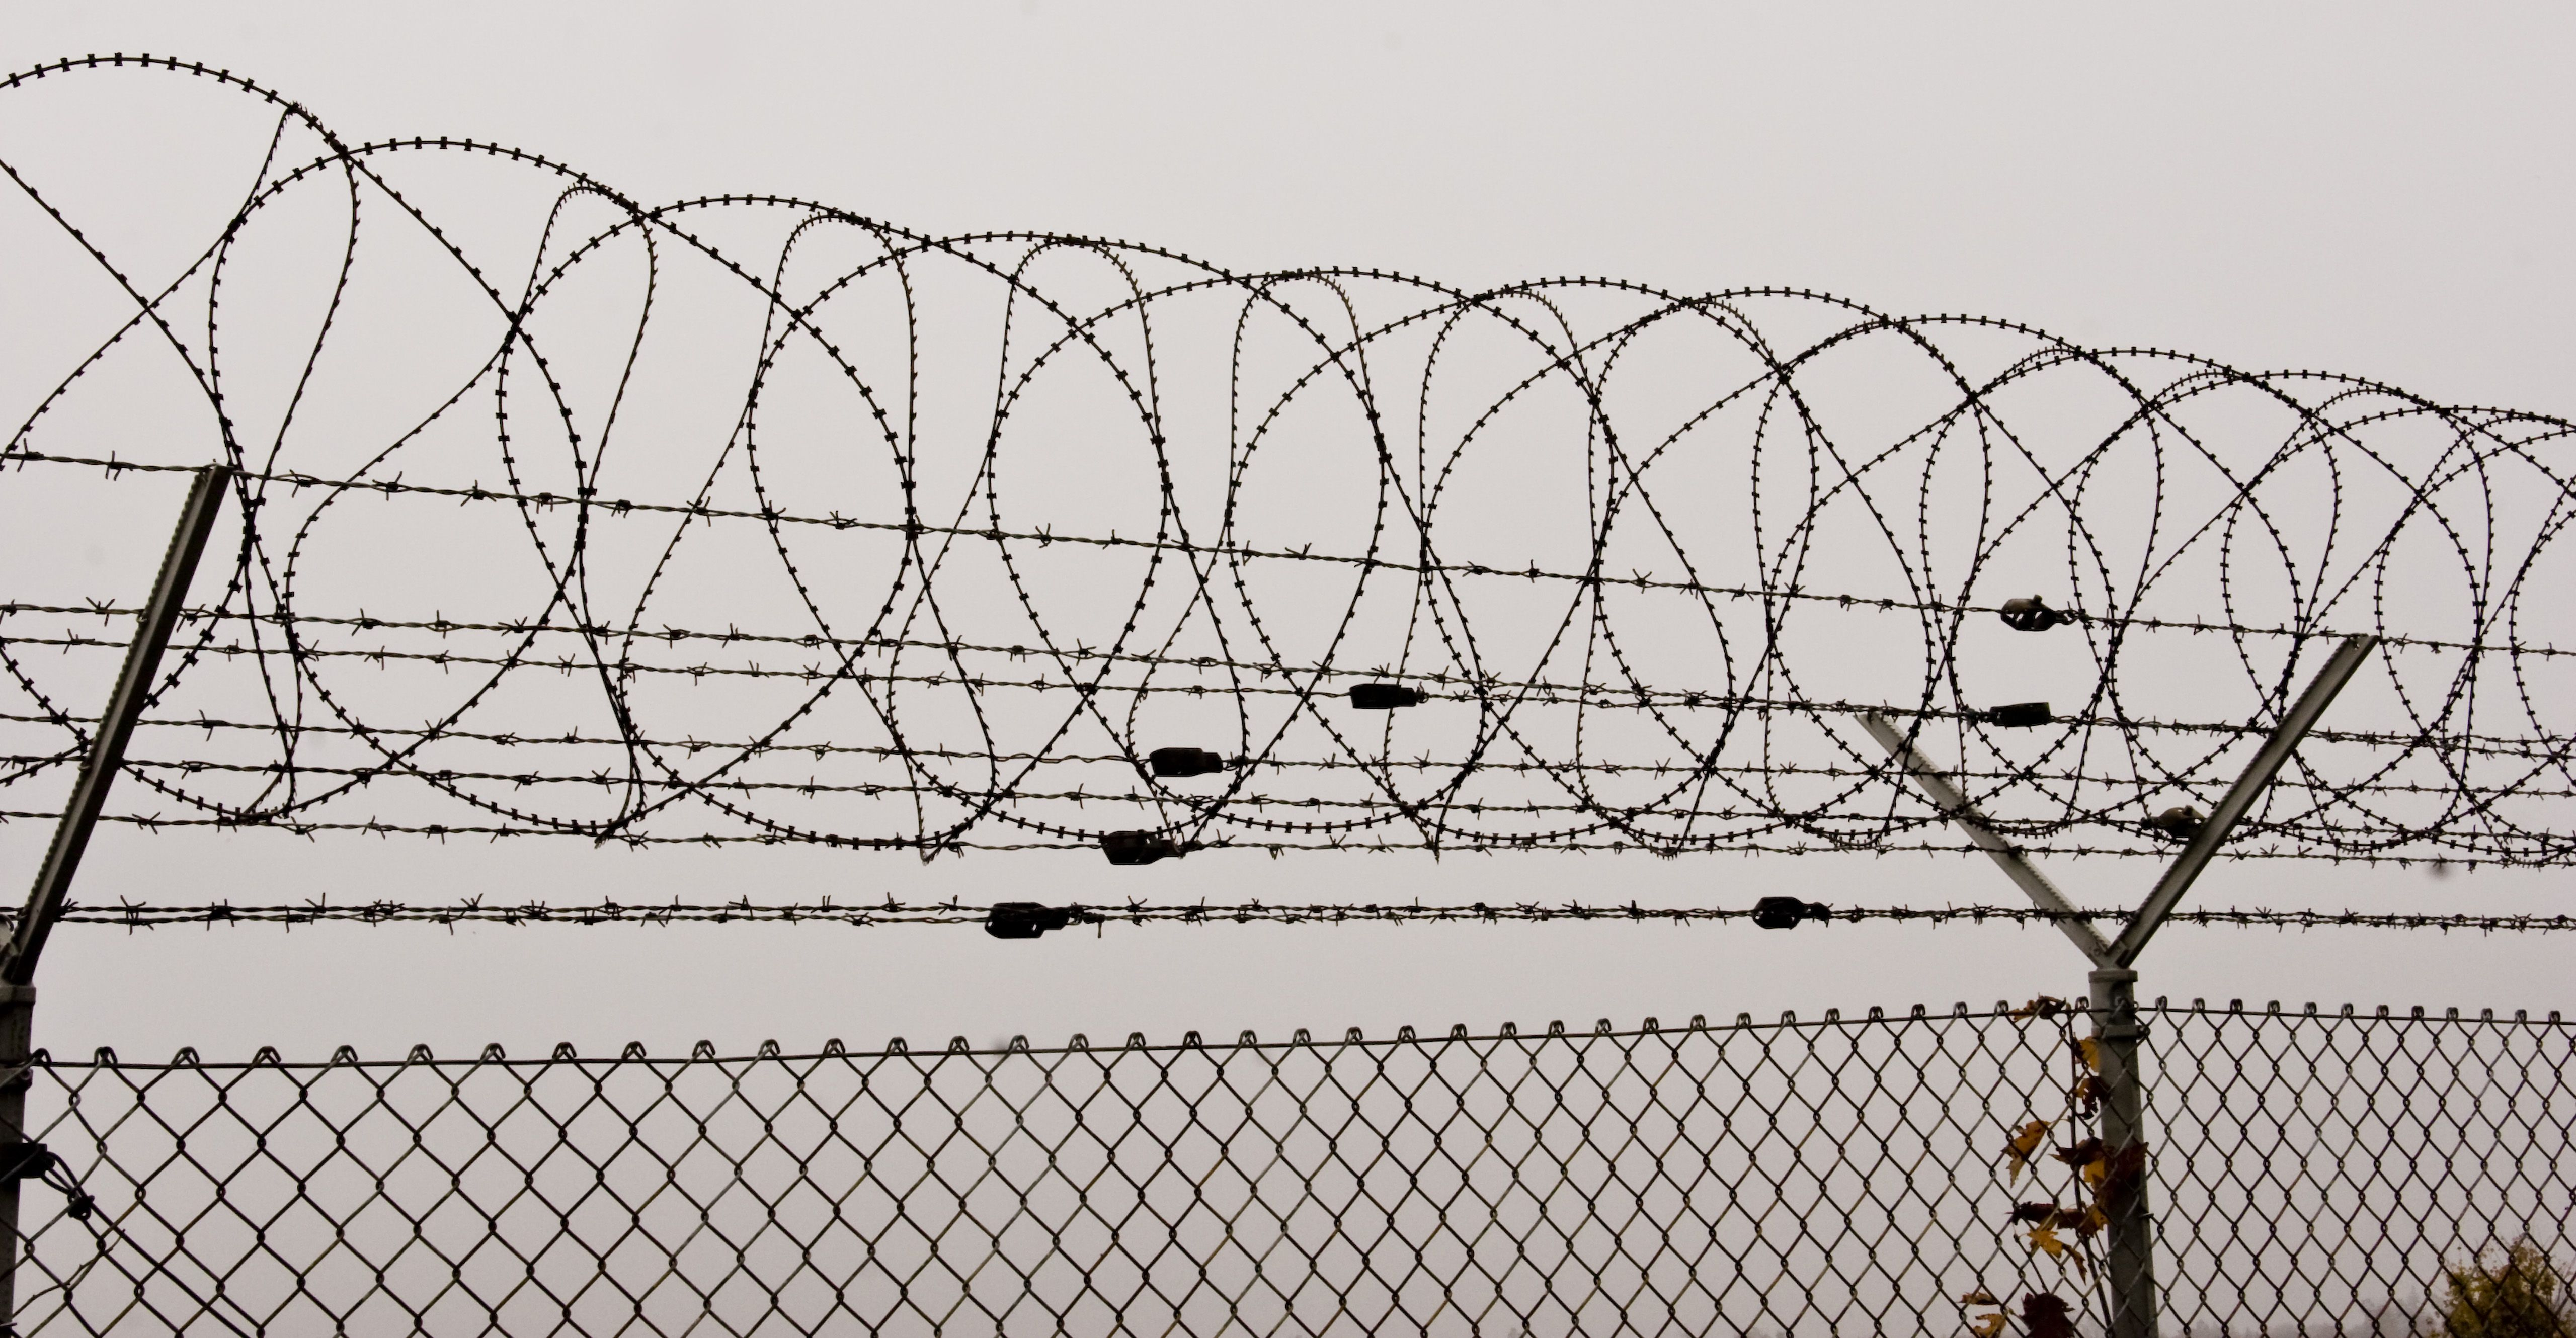 Barbed Wire | Iron Bazar | Graphic design references | Pinterest